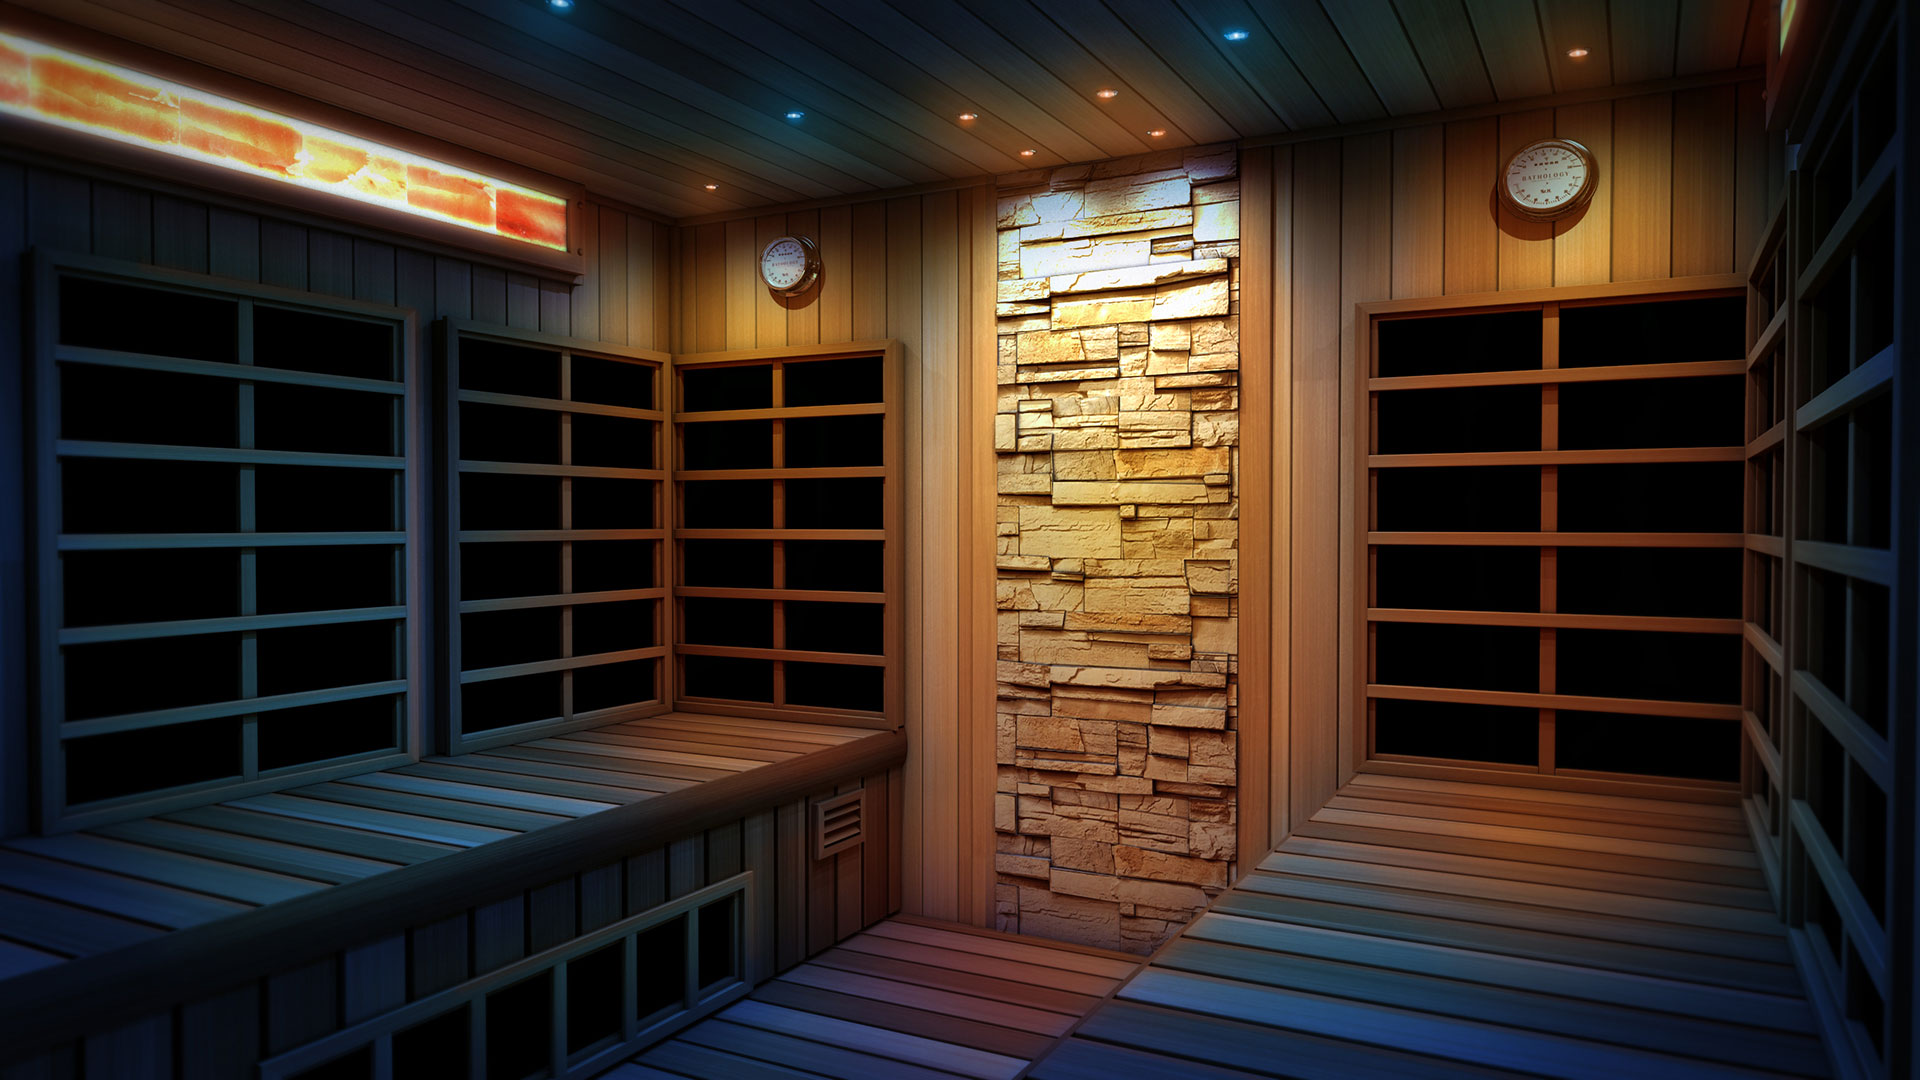 sauna design mccarthy steam and sauna bath. Black Bedroom Furniture Sets. Home Design Ideas